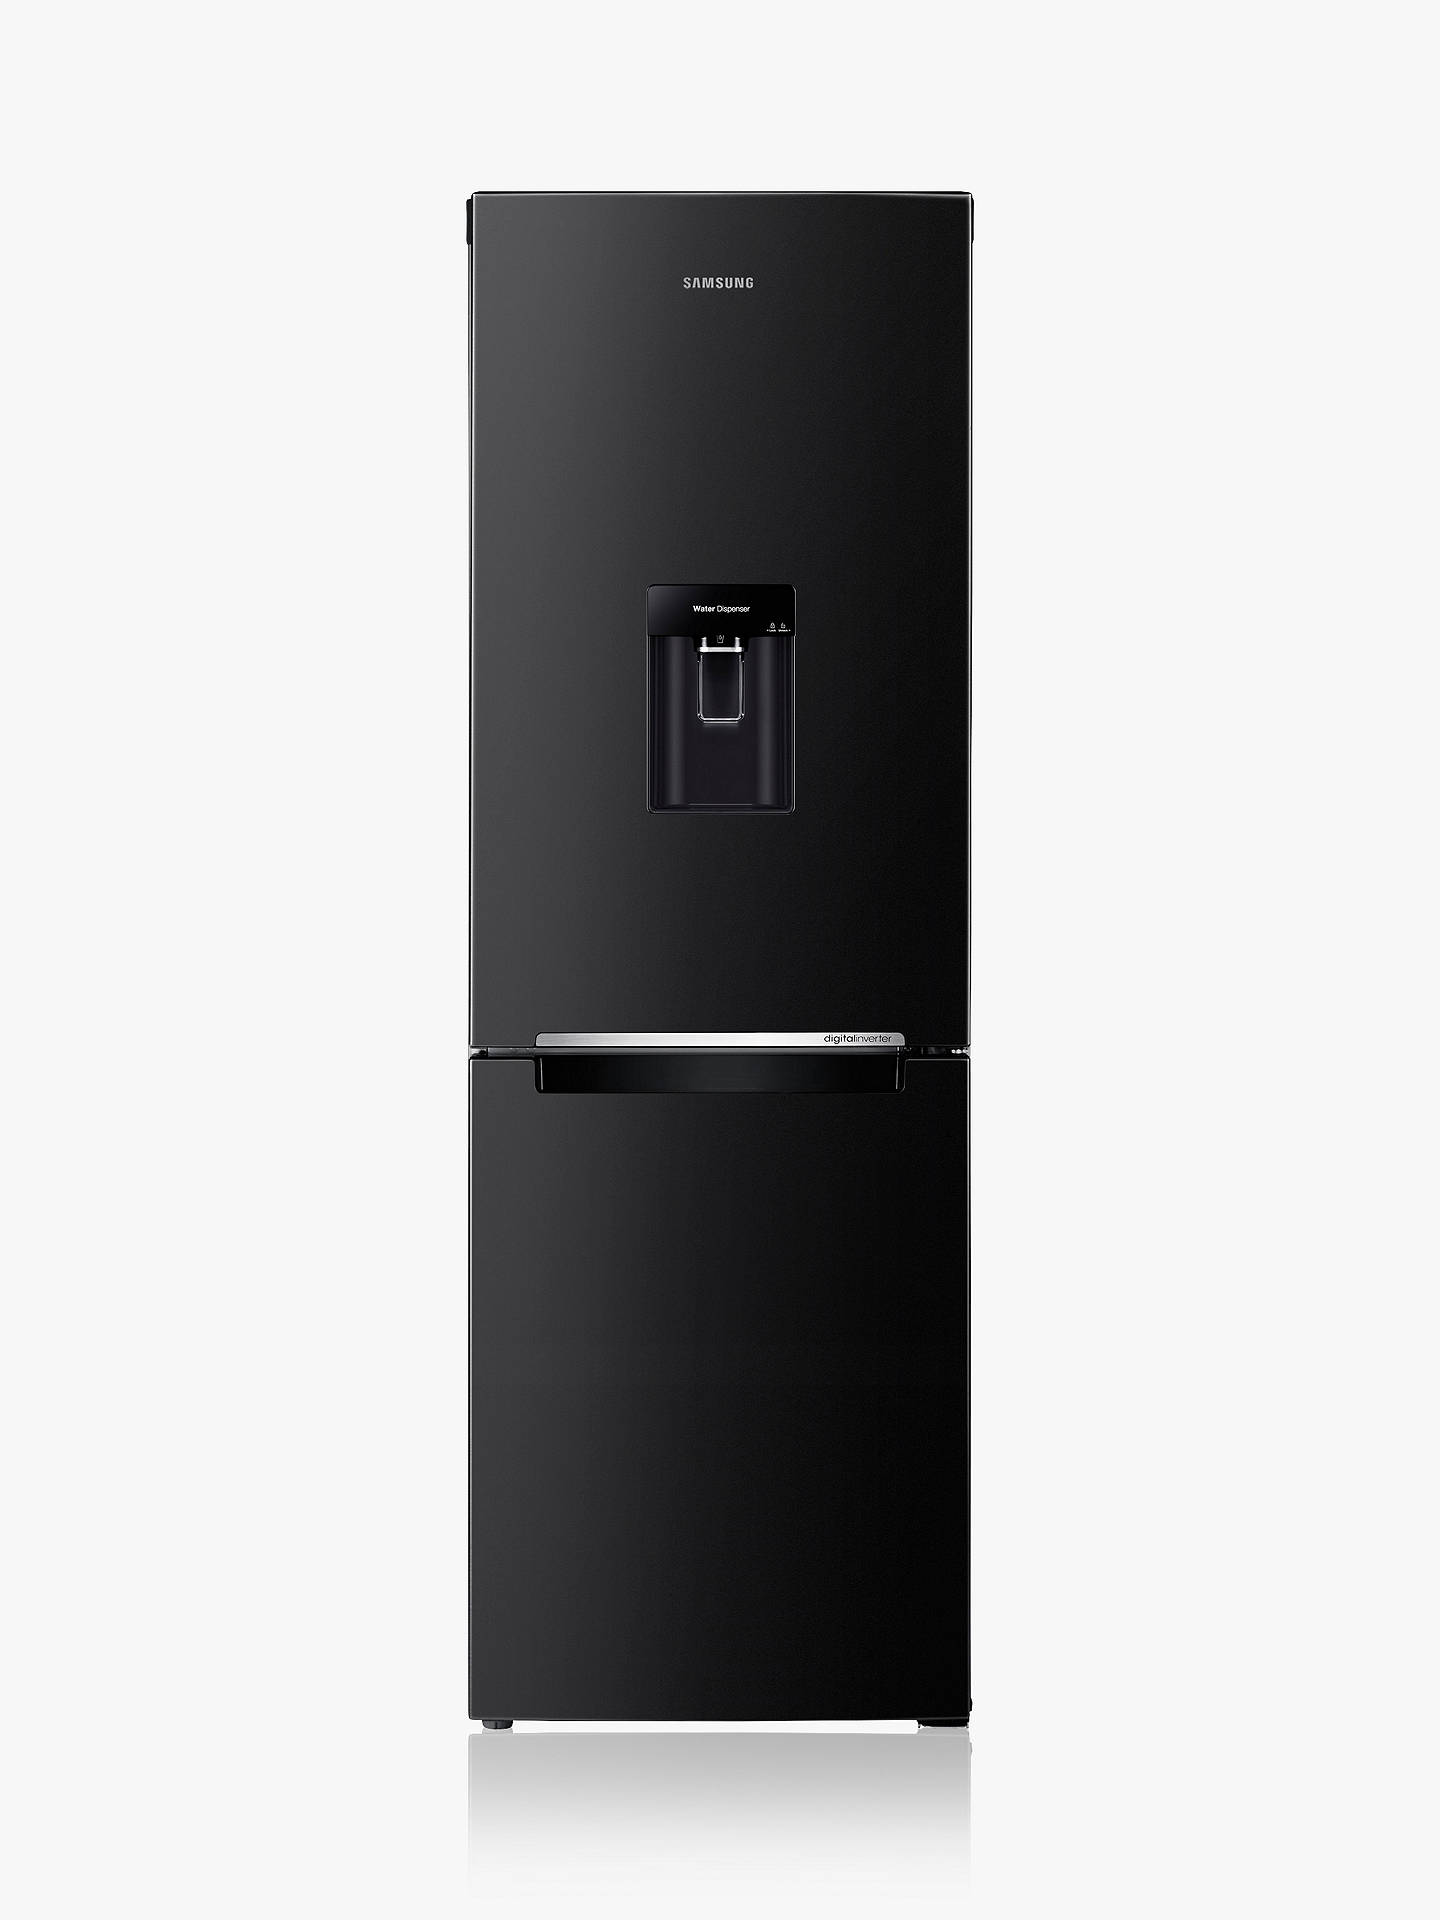 BuySamsung RB29FWRNDBC Fridge Freezer, A+ Energy Rating, 60cm Wide, Black Gloss Online at johnlewis.com